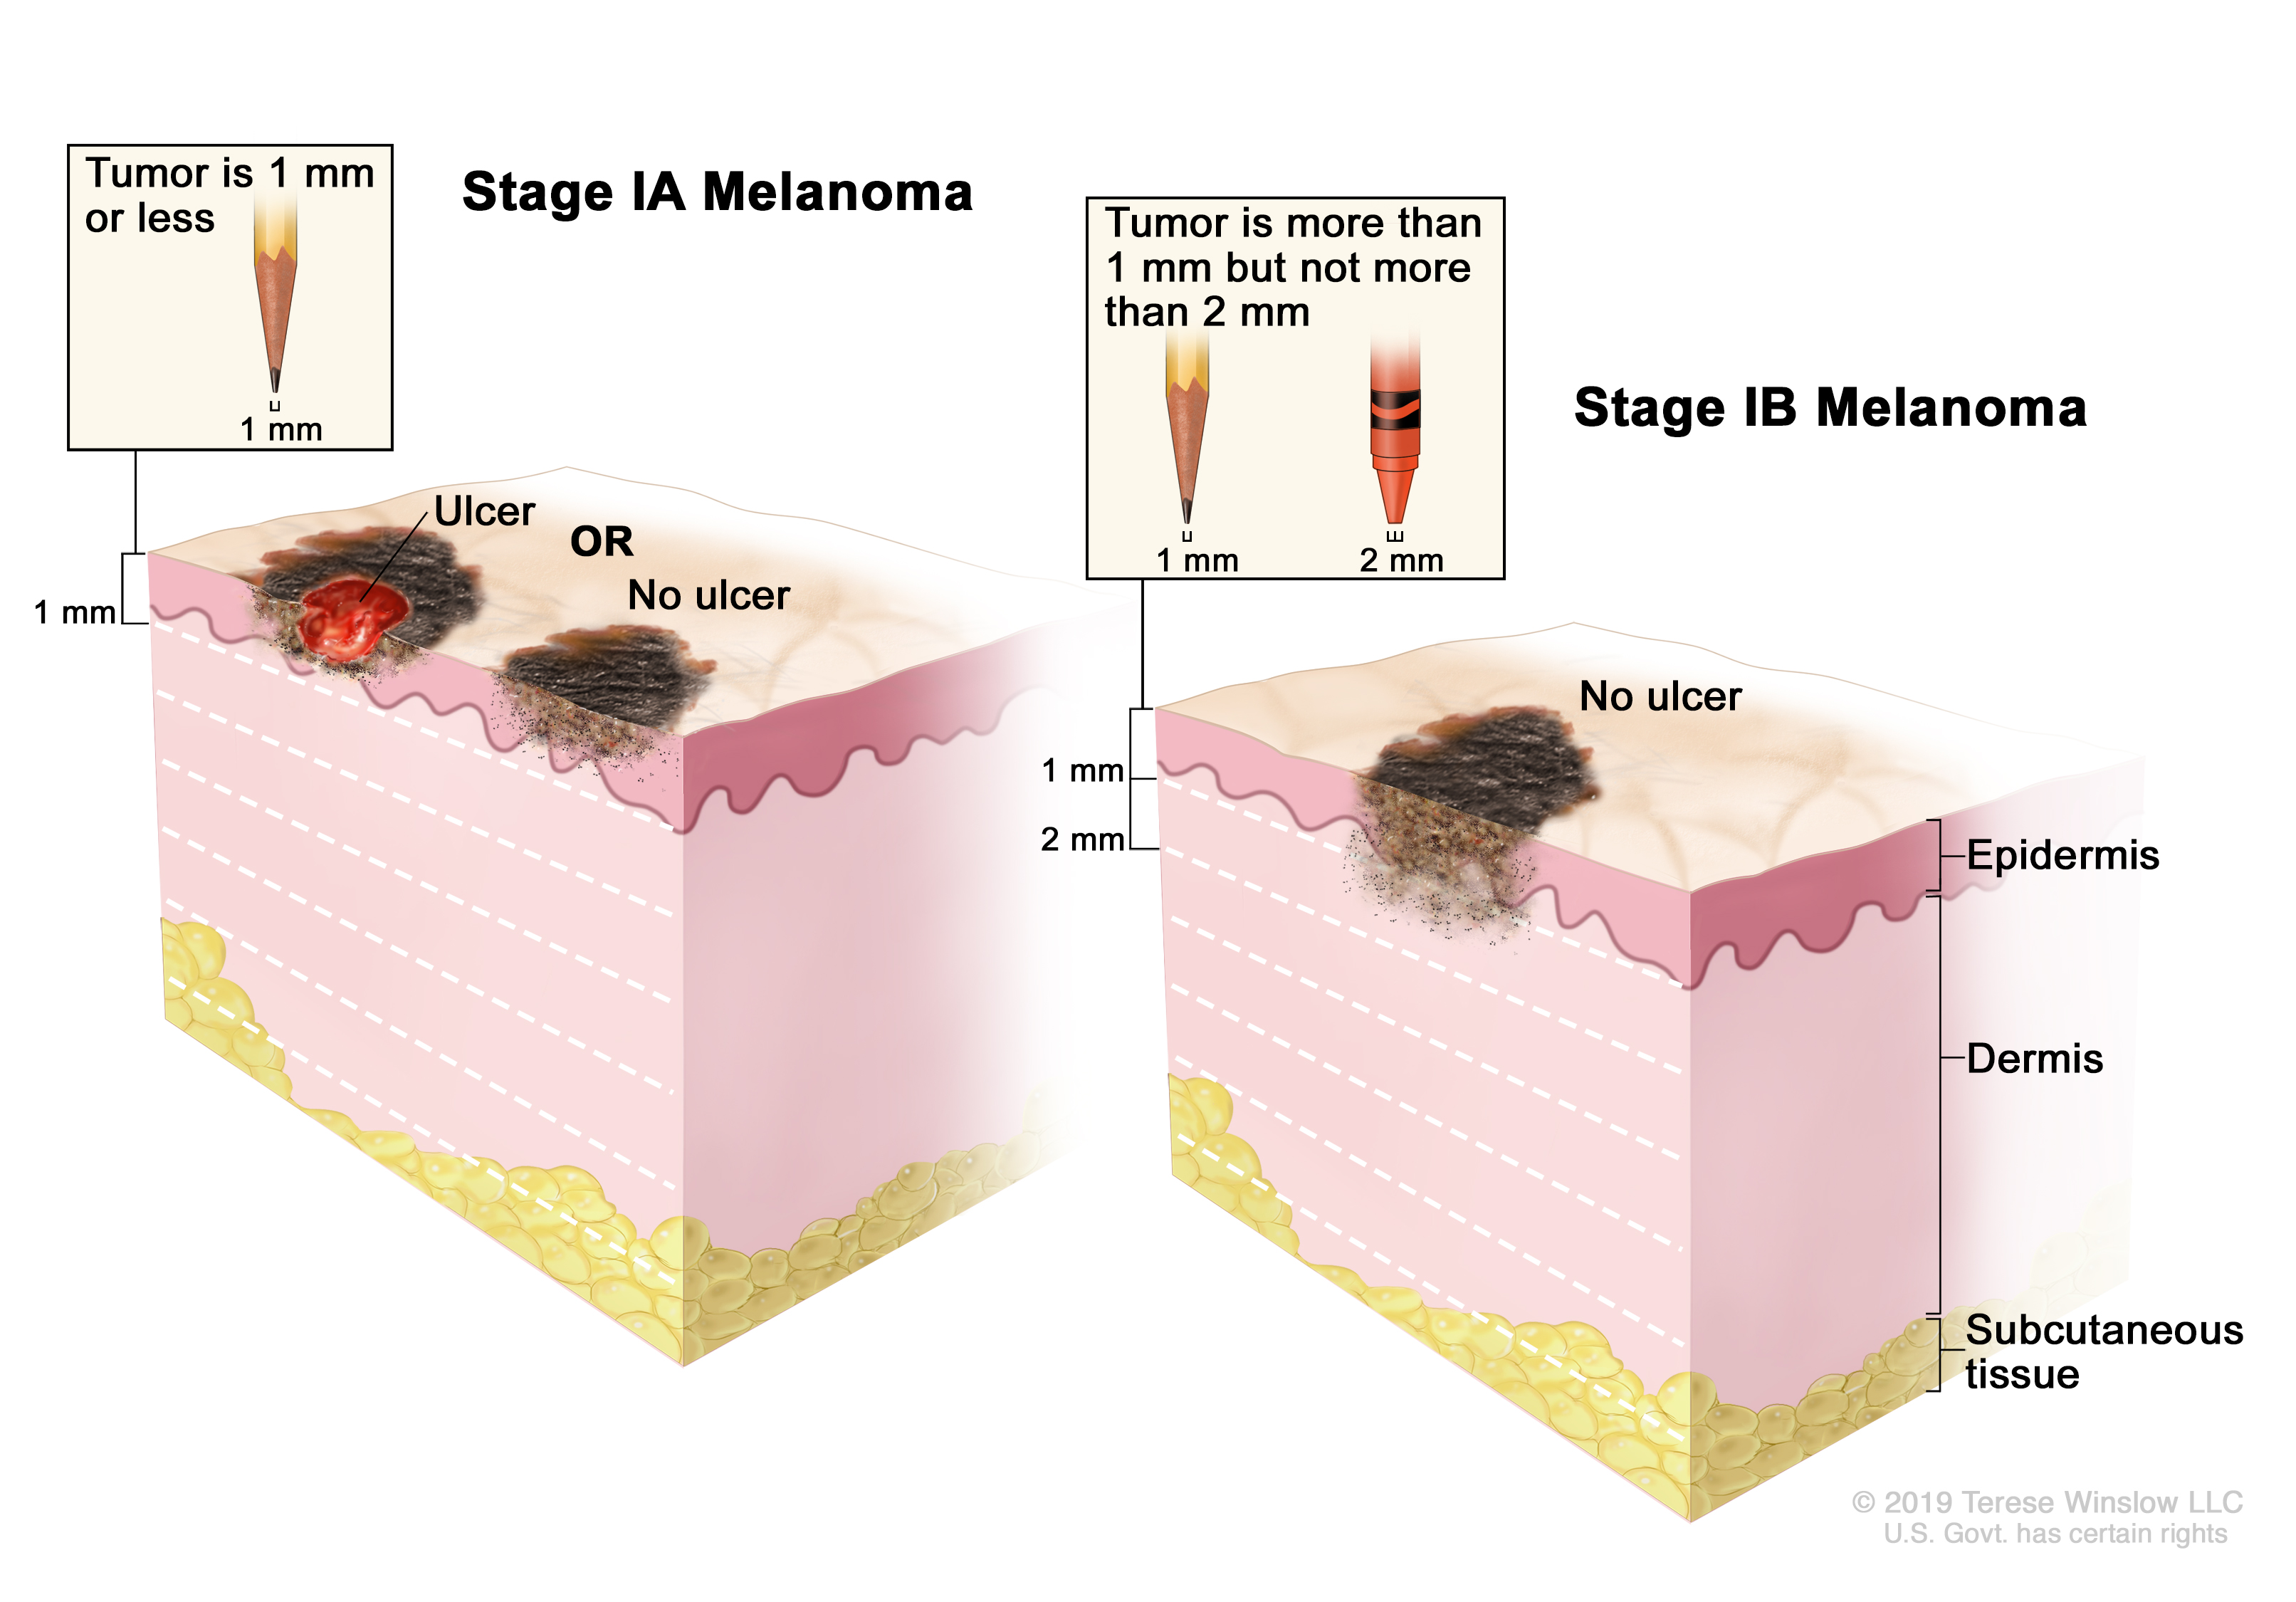 Two-panel drawing of stage I melanoma; the panel on the left shows a stage IA tumor that is not more than 1 millimeter thick, with ulceration (a break in the skin) and without ulceration. The panel on the right shows a stage IB tumor that is more than 1 but not more than 2 millimeters thick, without ulceration. Also shown are the epidermis (outer layer of the skin), the dermis (inner layer of the skin), and the subcutaneous tissue below the dermis.